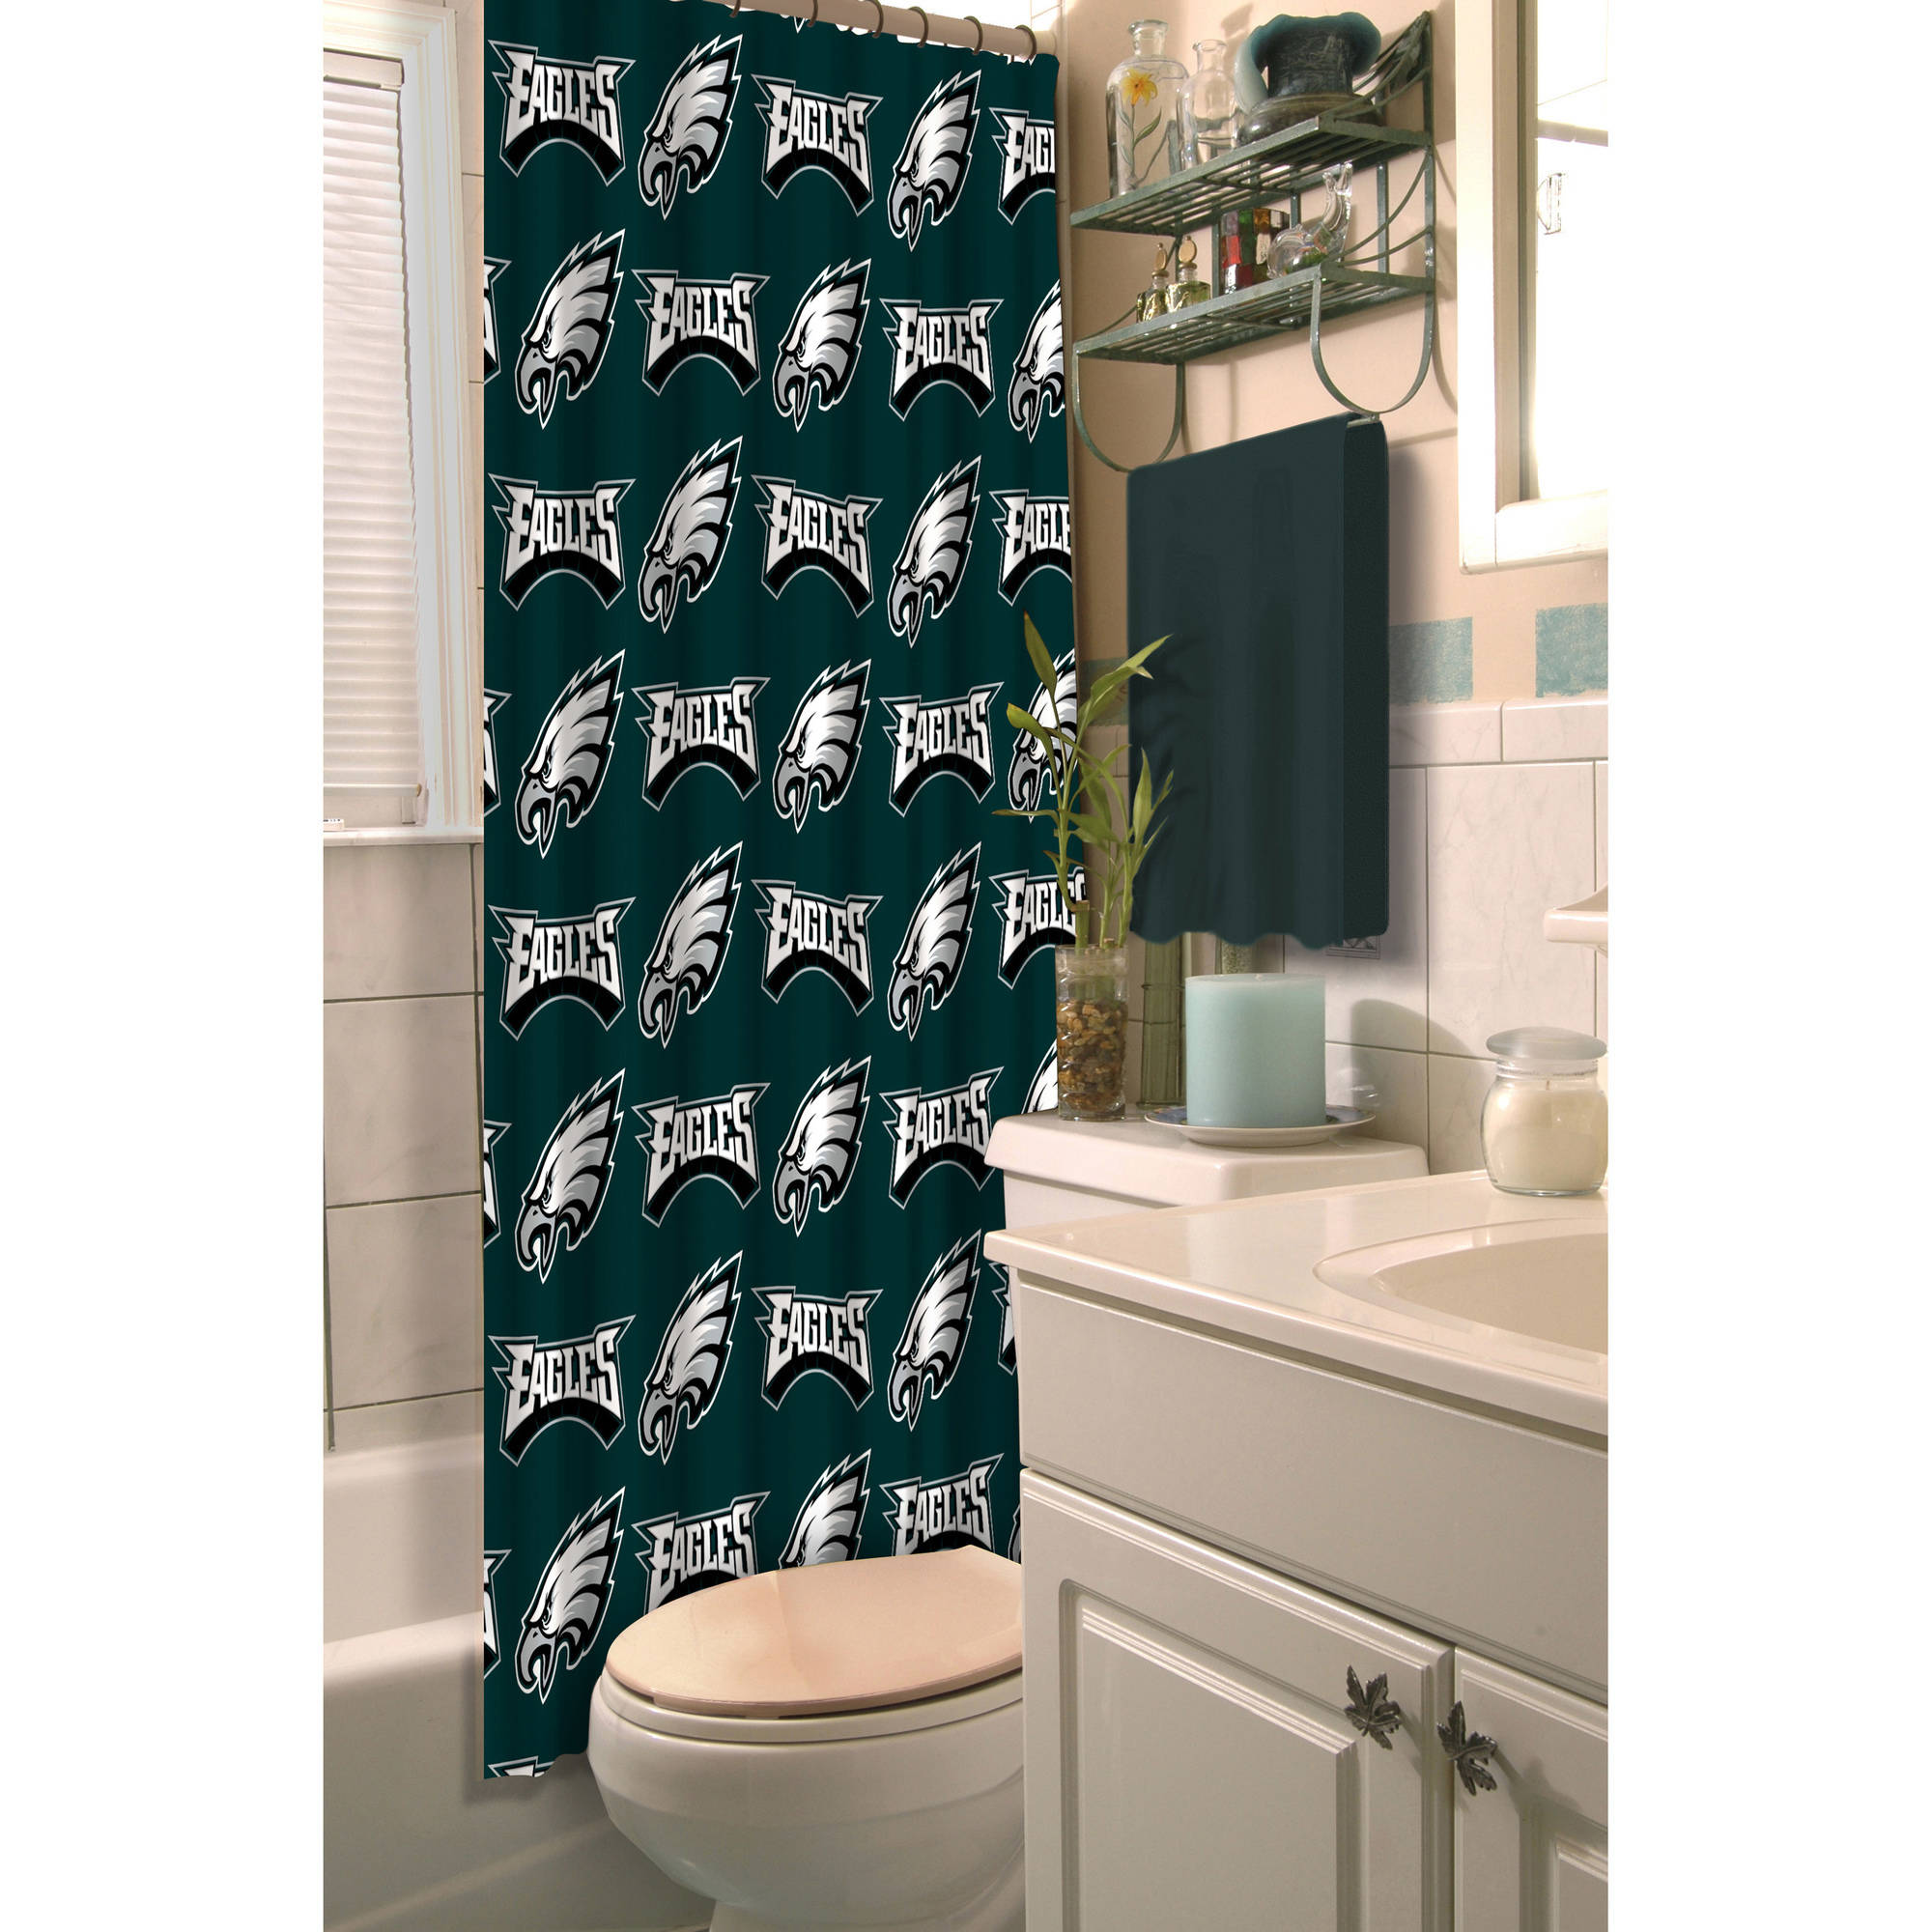 NFL Philadelphia Eagles Decorative Bath Collection - Shower Curtain